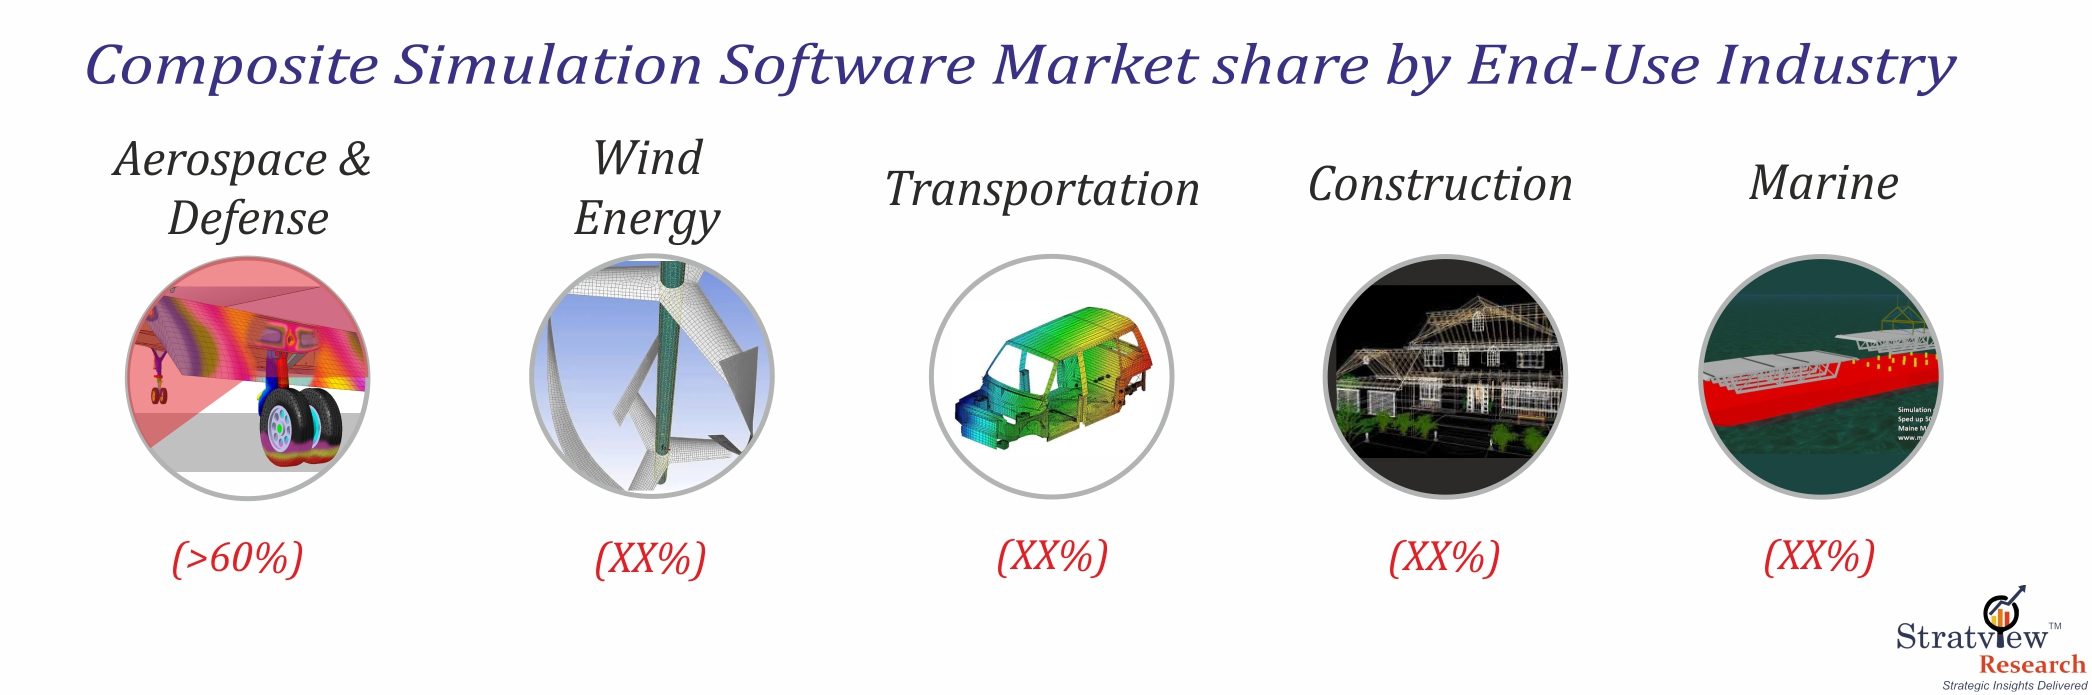 Composite Simulation Software Market by Application